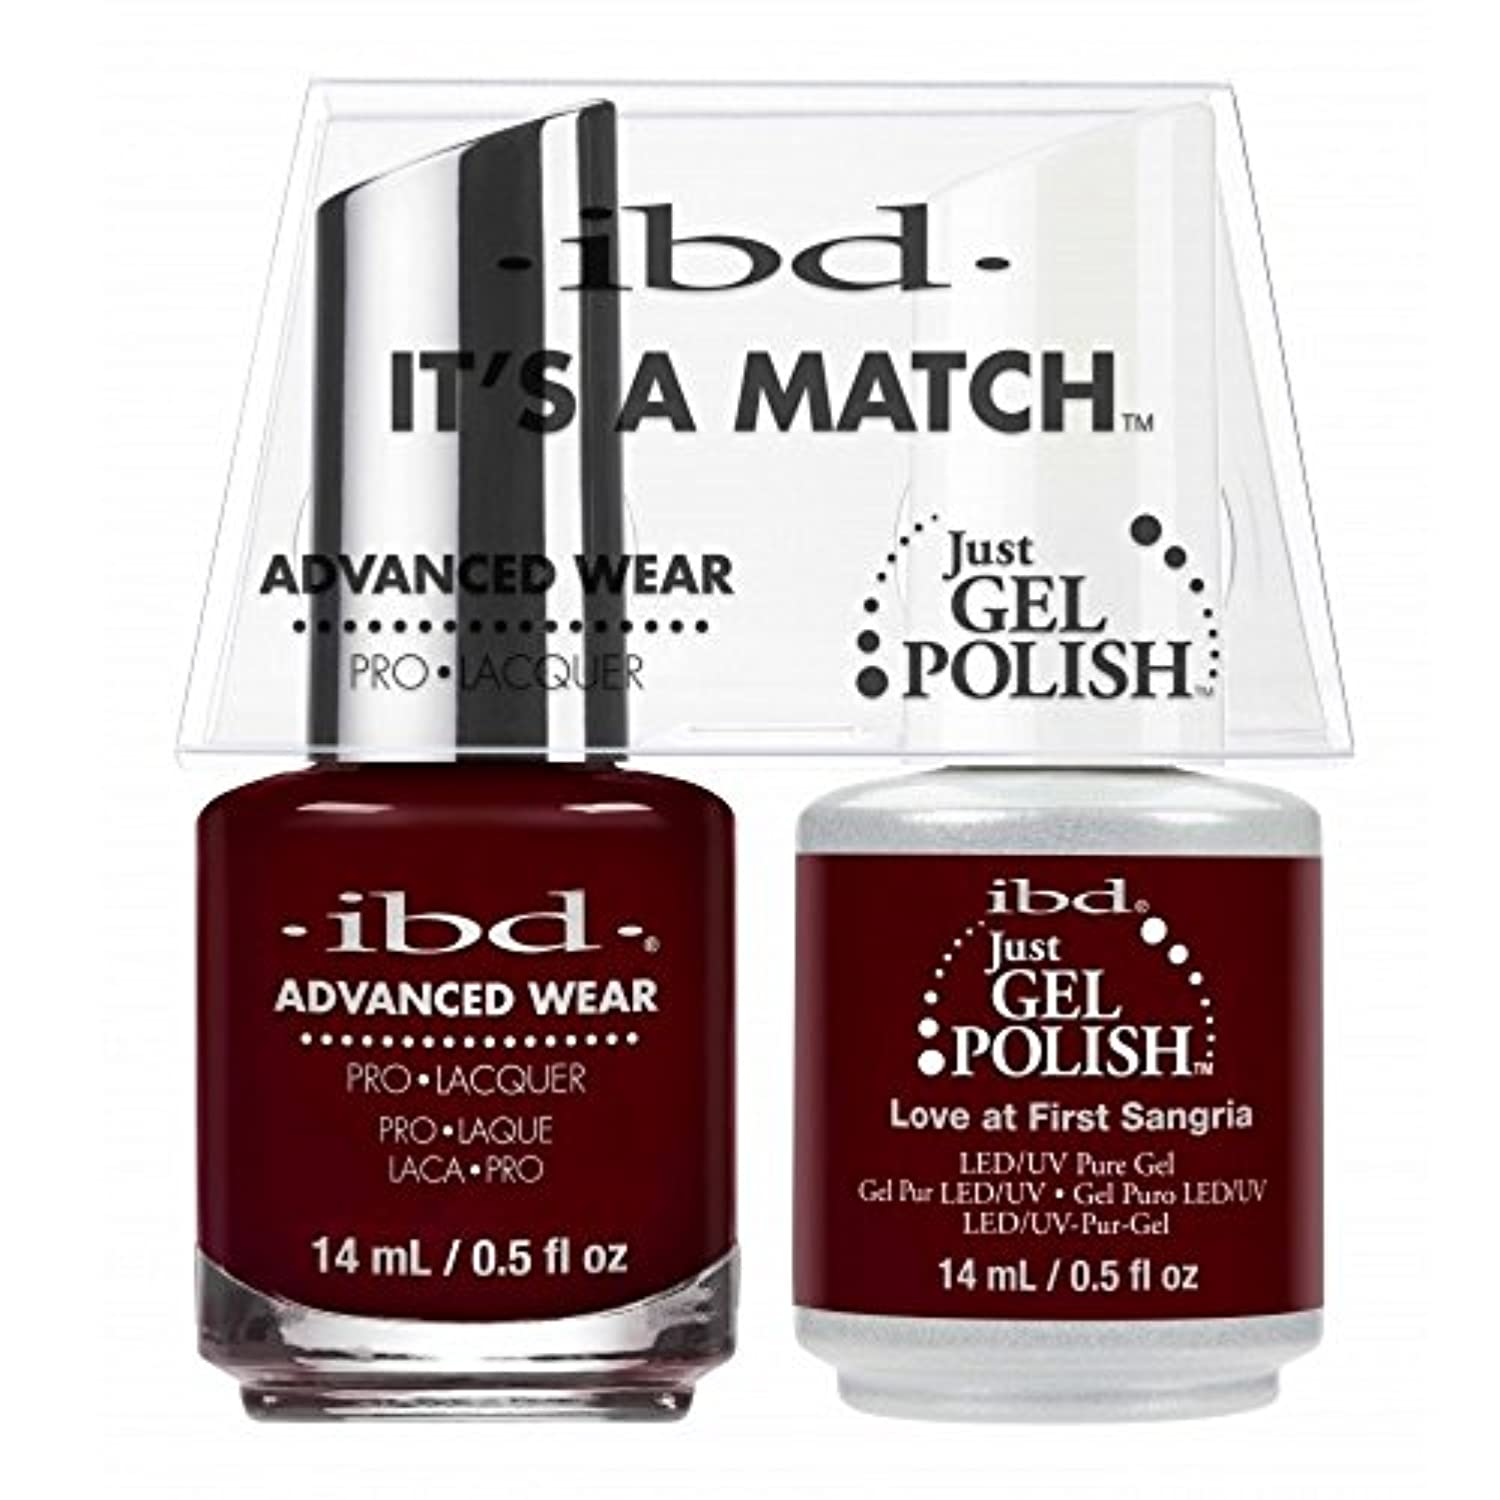 ibd - It's A Match -Duo Pack- Love Lola Collection - Love at First Sangria - 14 mL / 0.5 oz Each